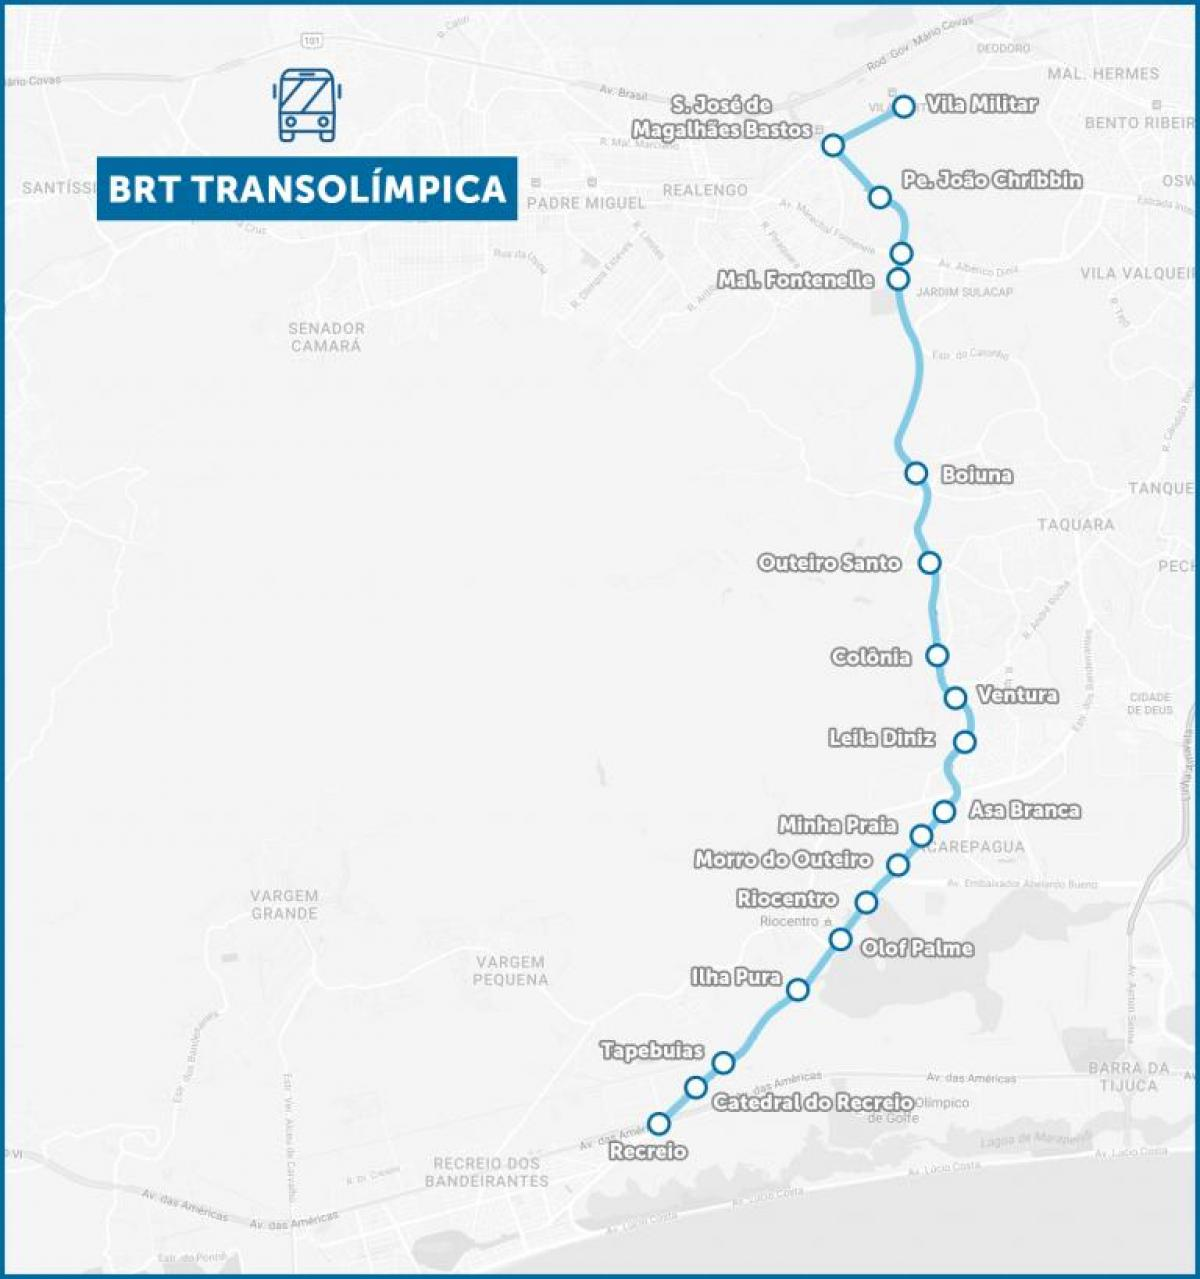 Map of BRT TransOlimpica